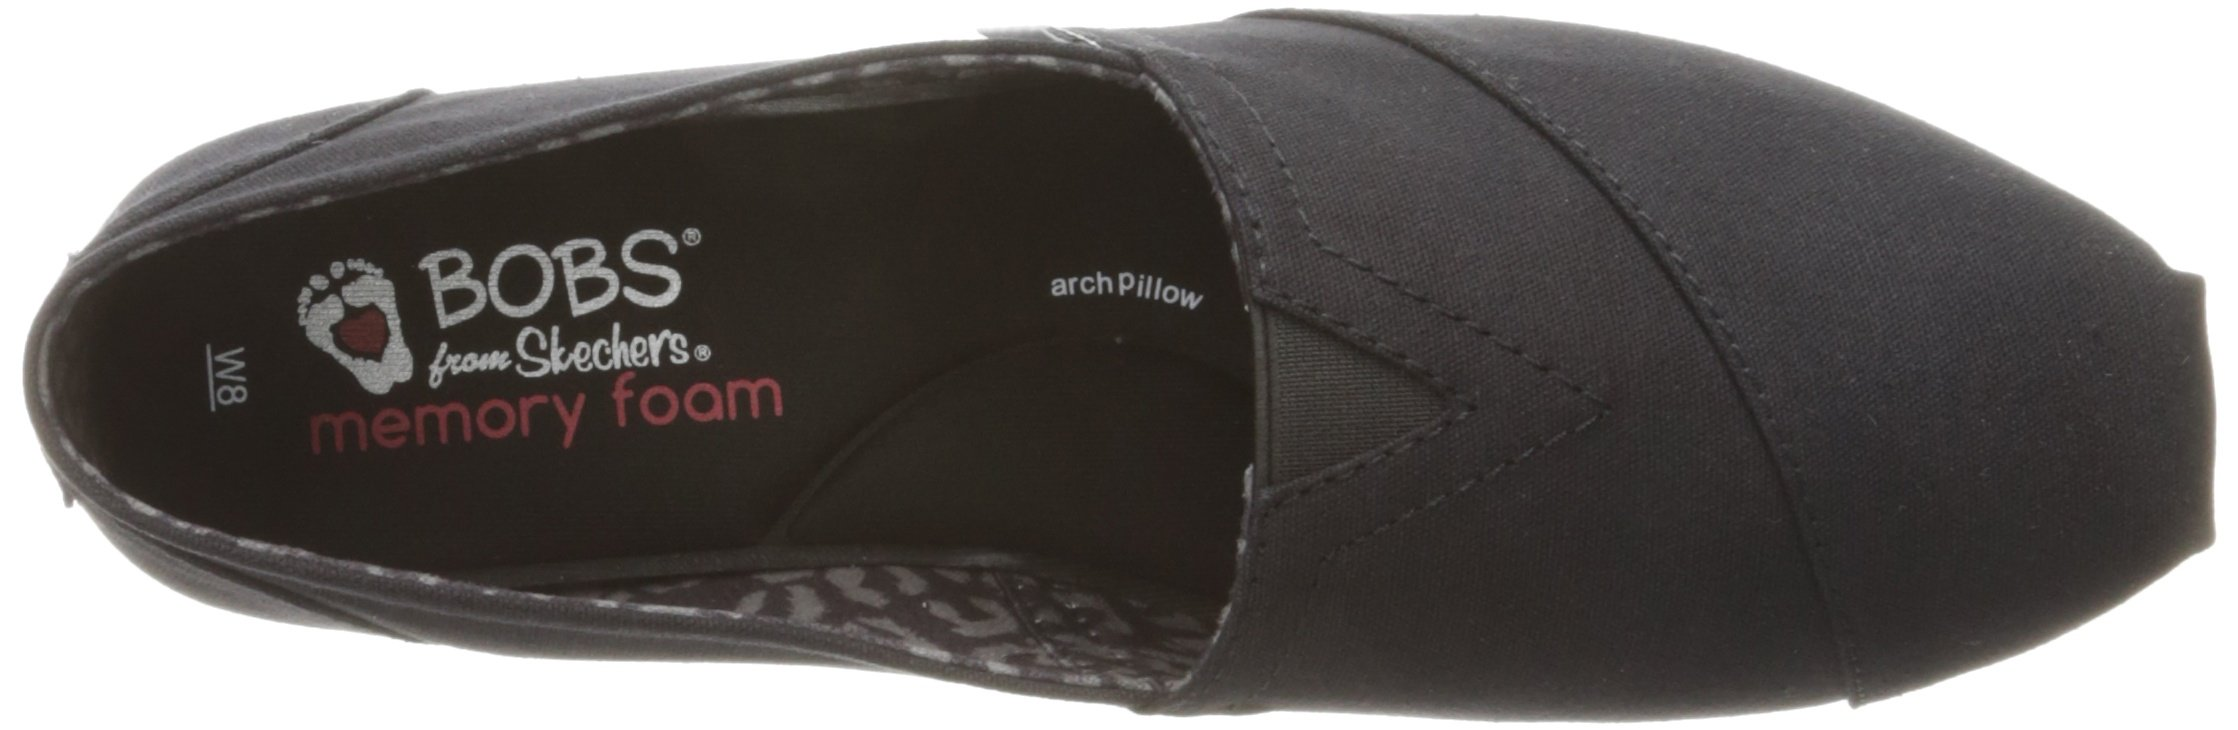 Skechers BOBS from Women's Plush - Peace and Love Flat, Black, 9.5 W US by Skechers (Image #8)